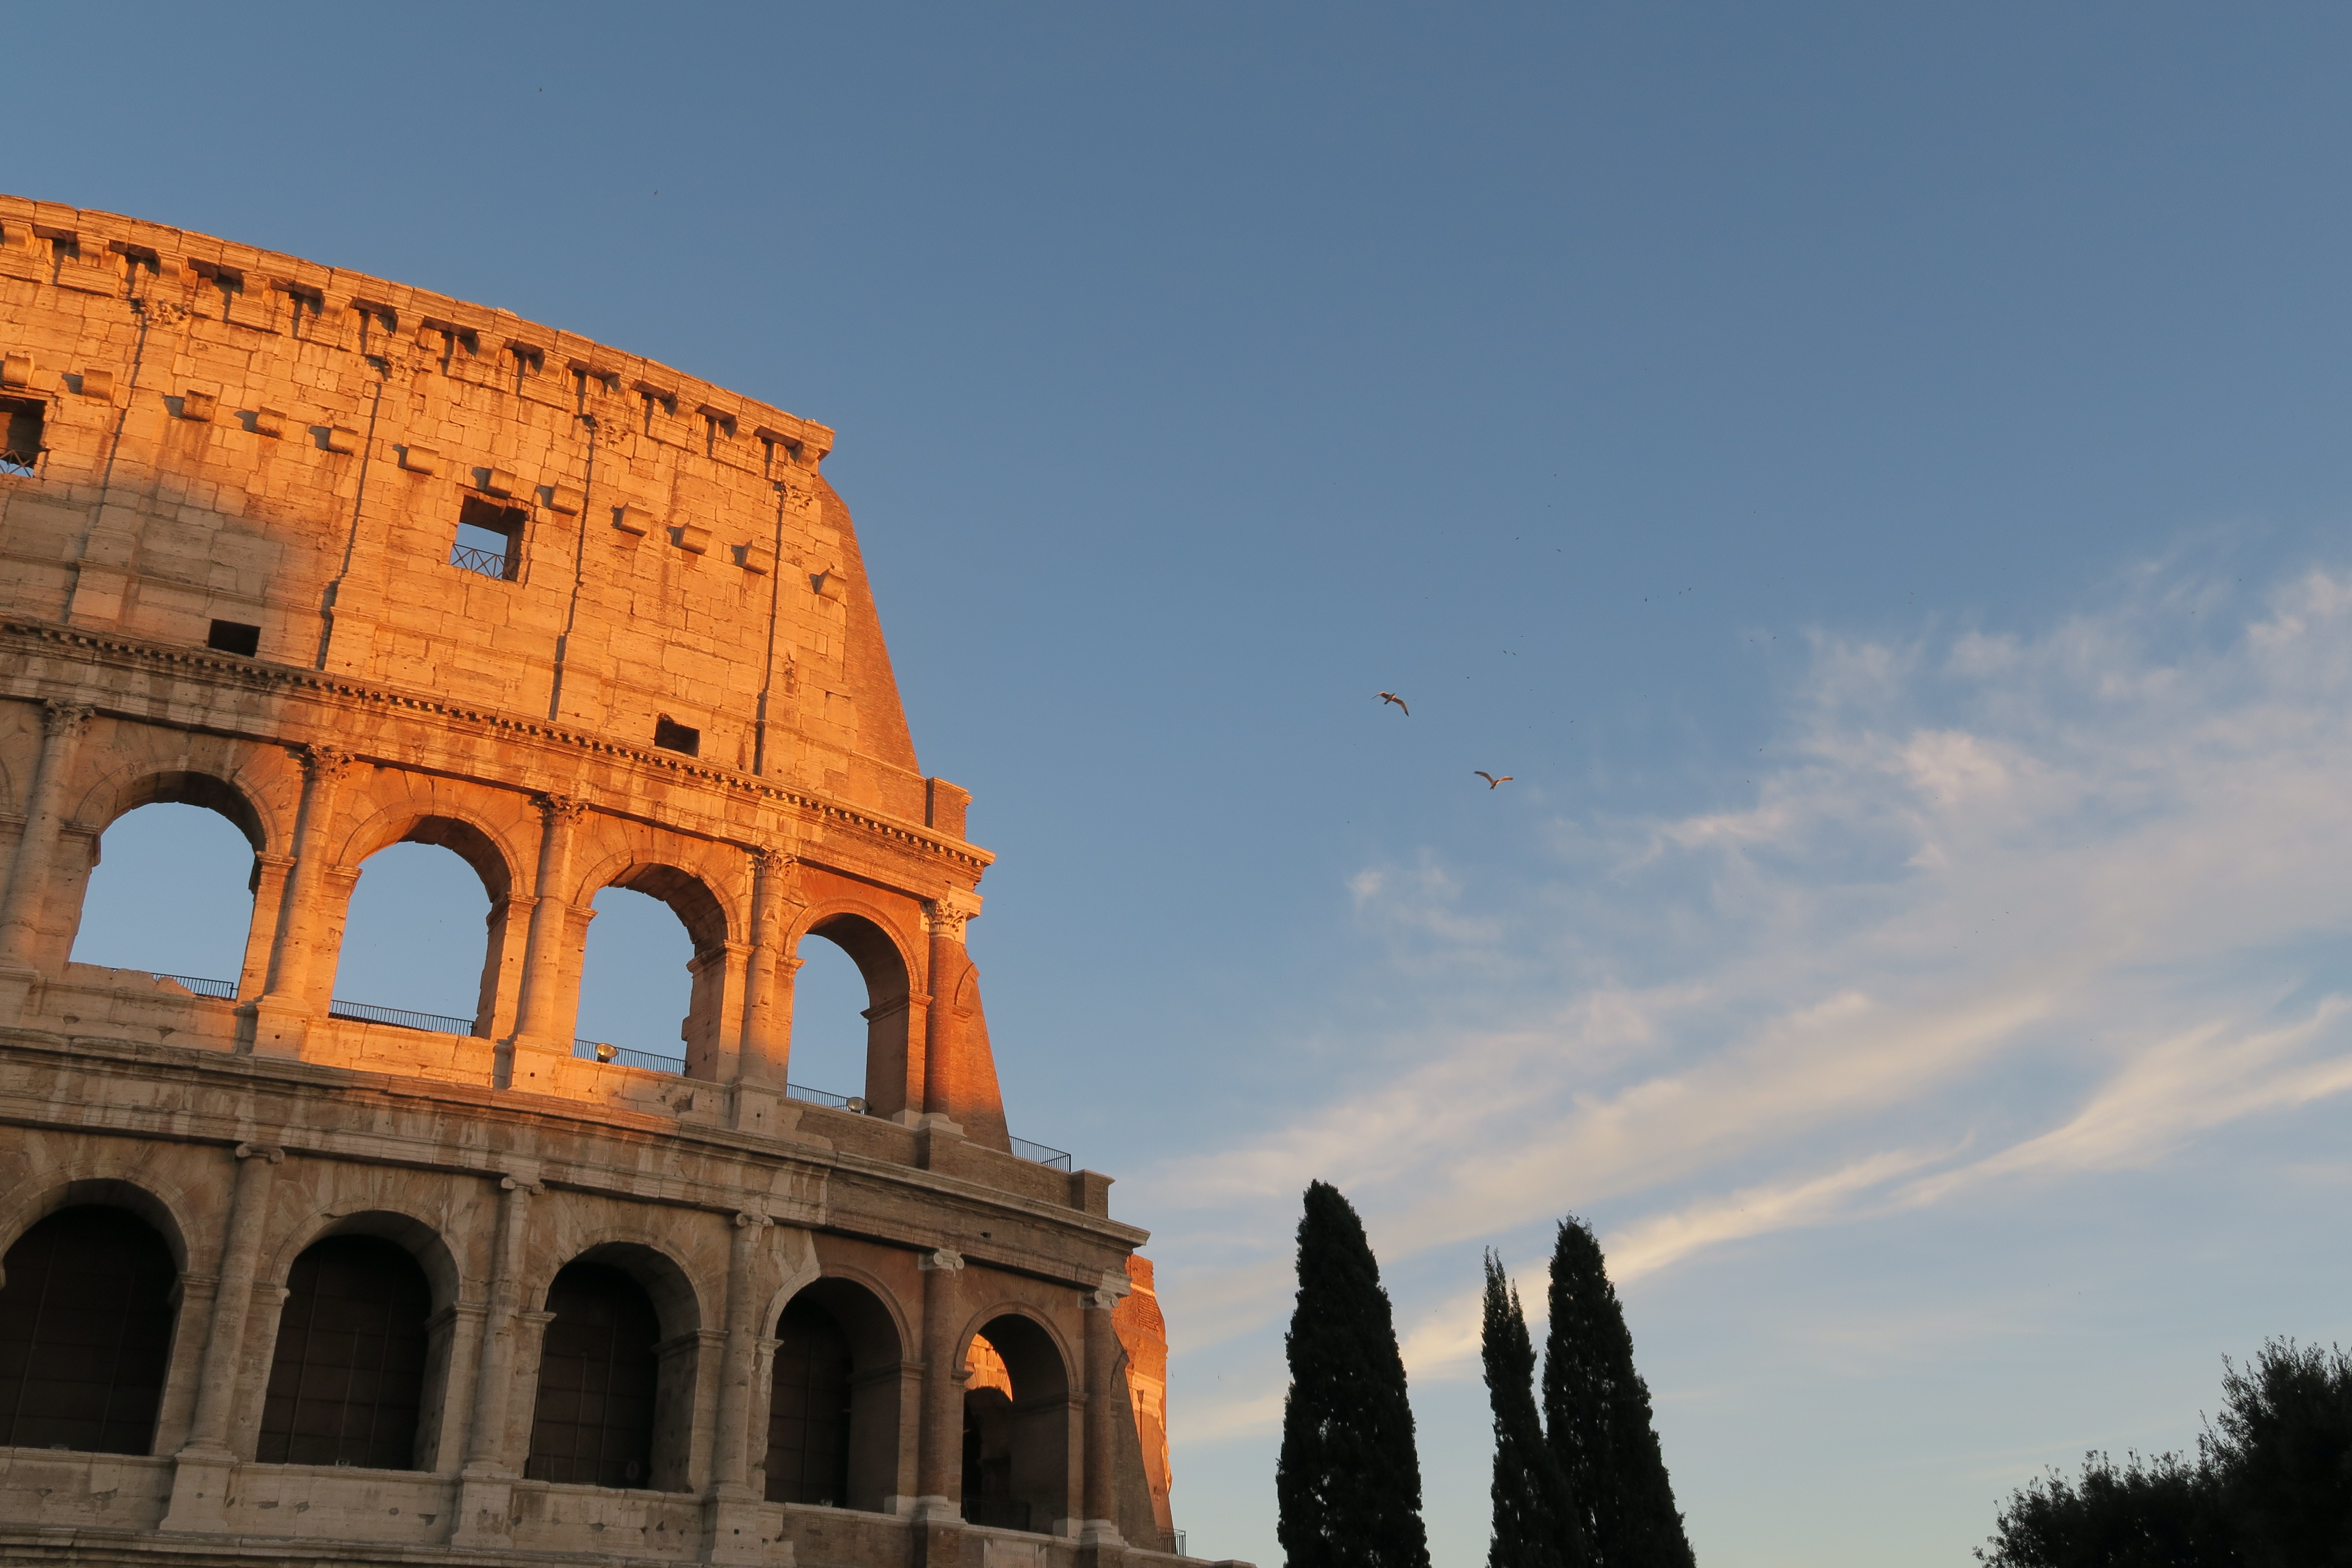 TheColosseum